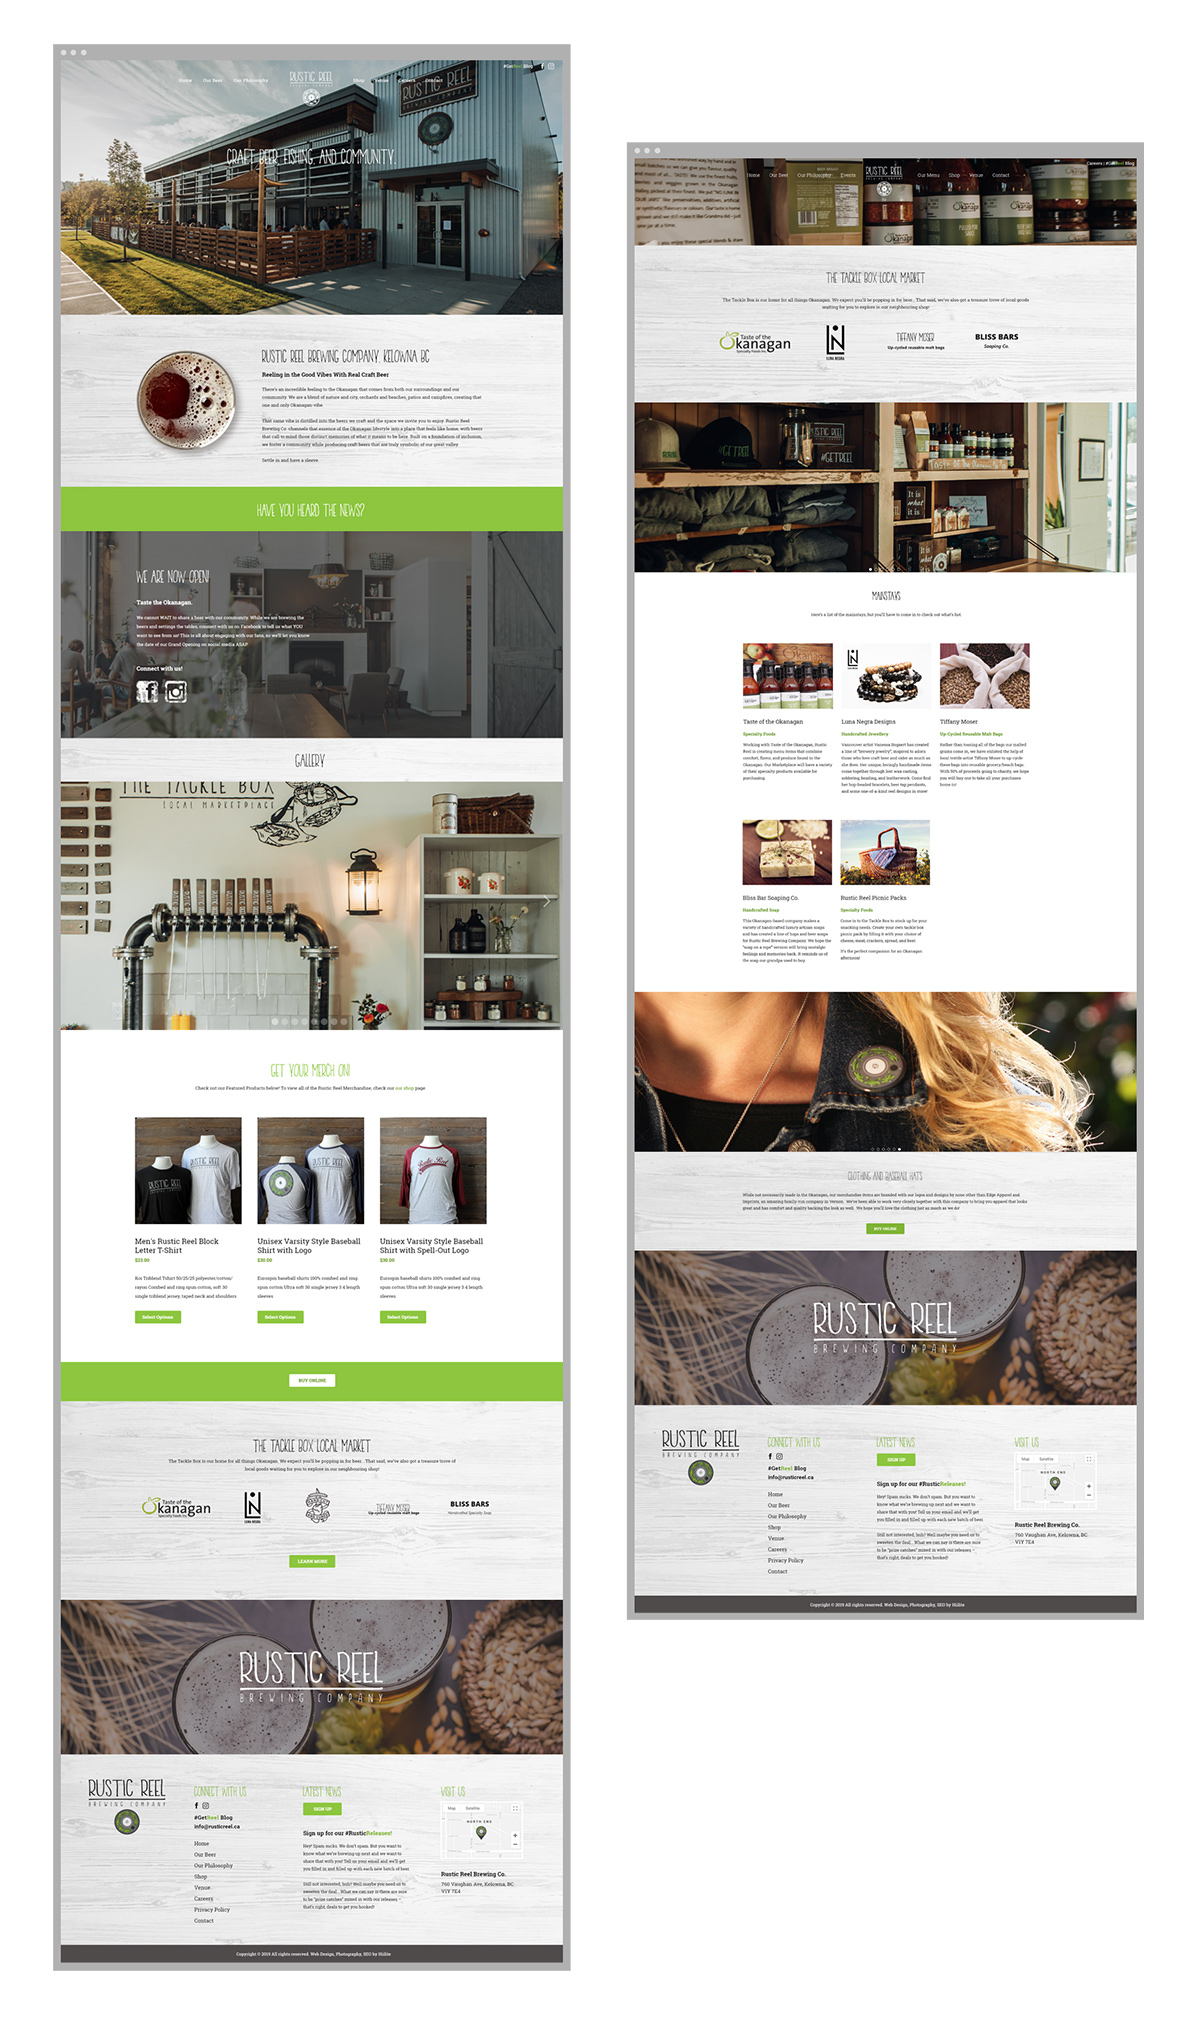 kelowna brewery marketing design of pages